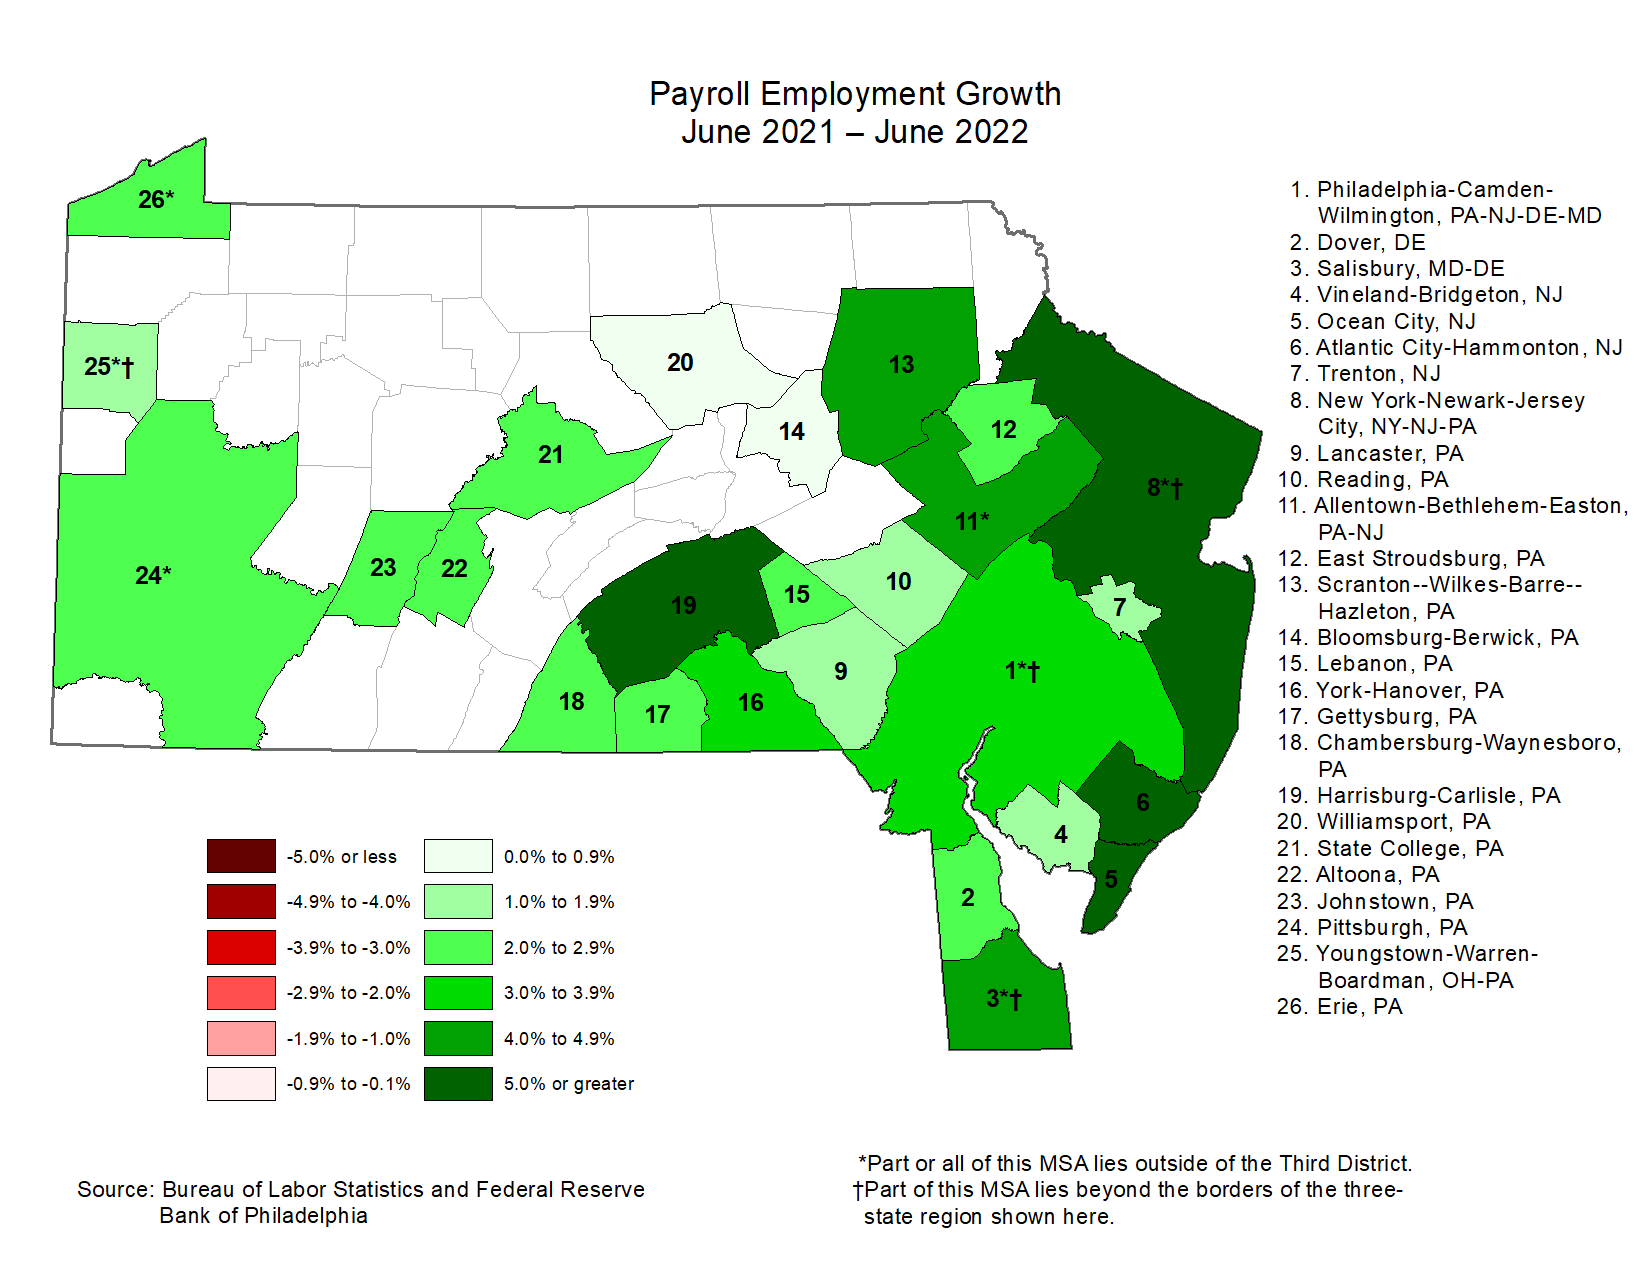 Map showing Payroll Employment Growth